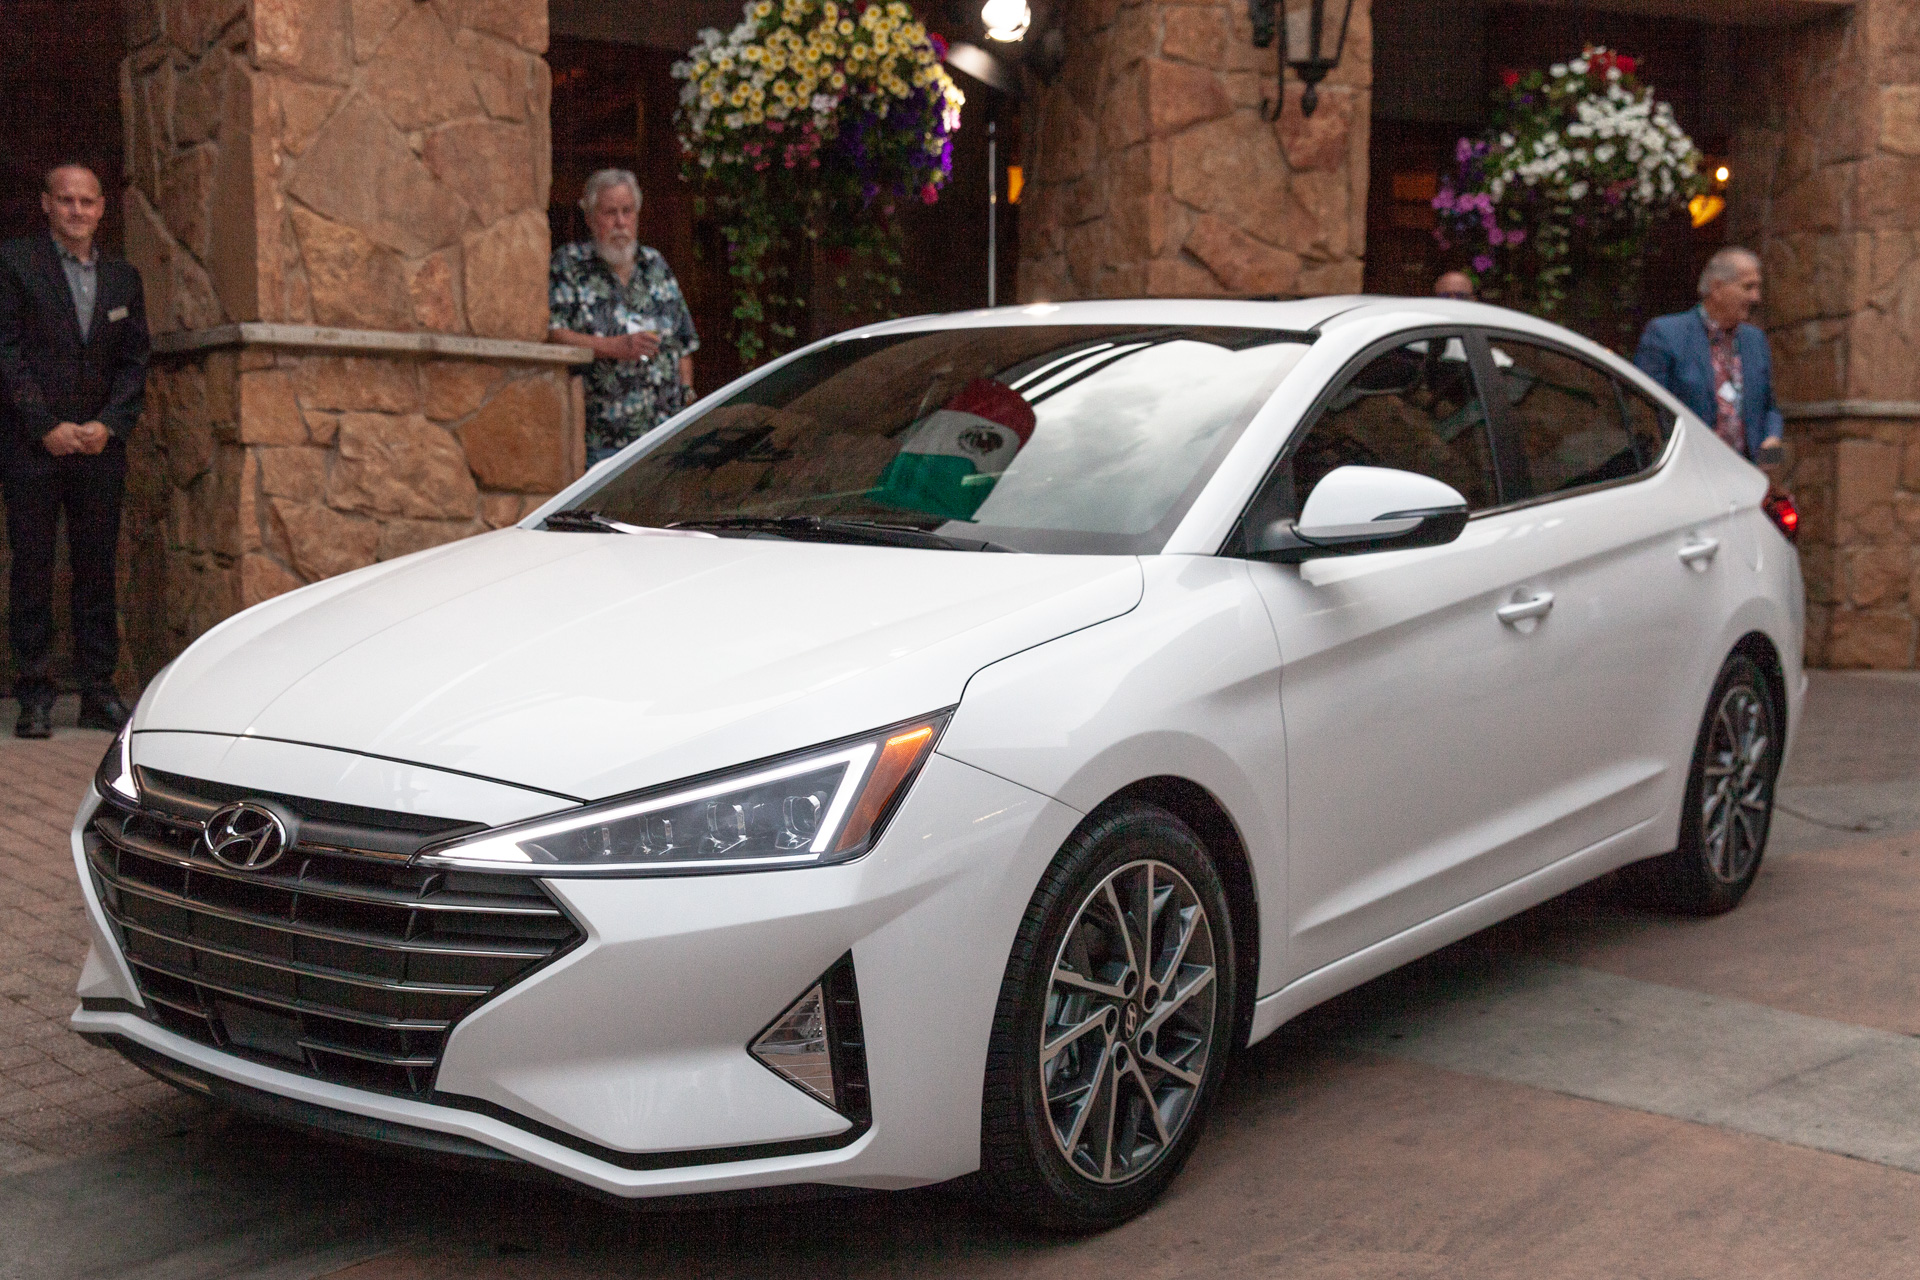 Hyundai Elantra: Operating precautions for catalytic converters (if equipped)